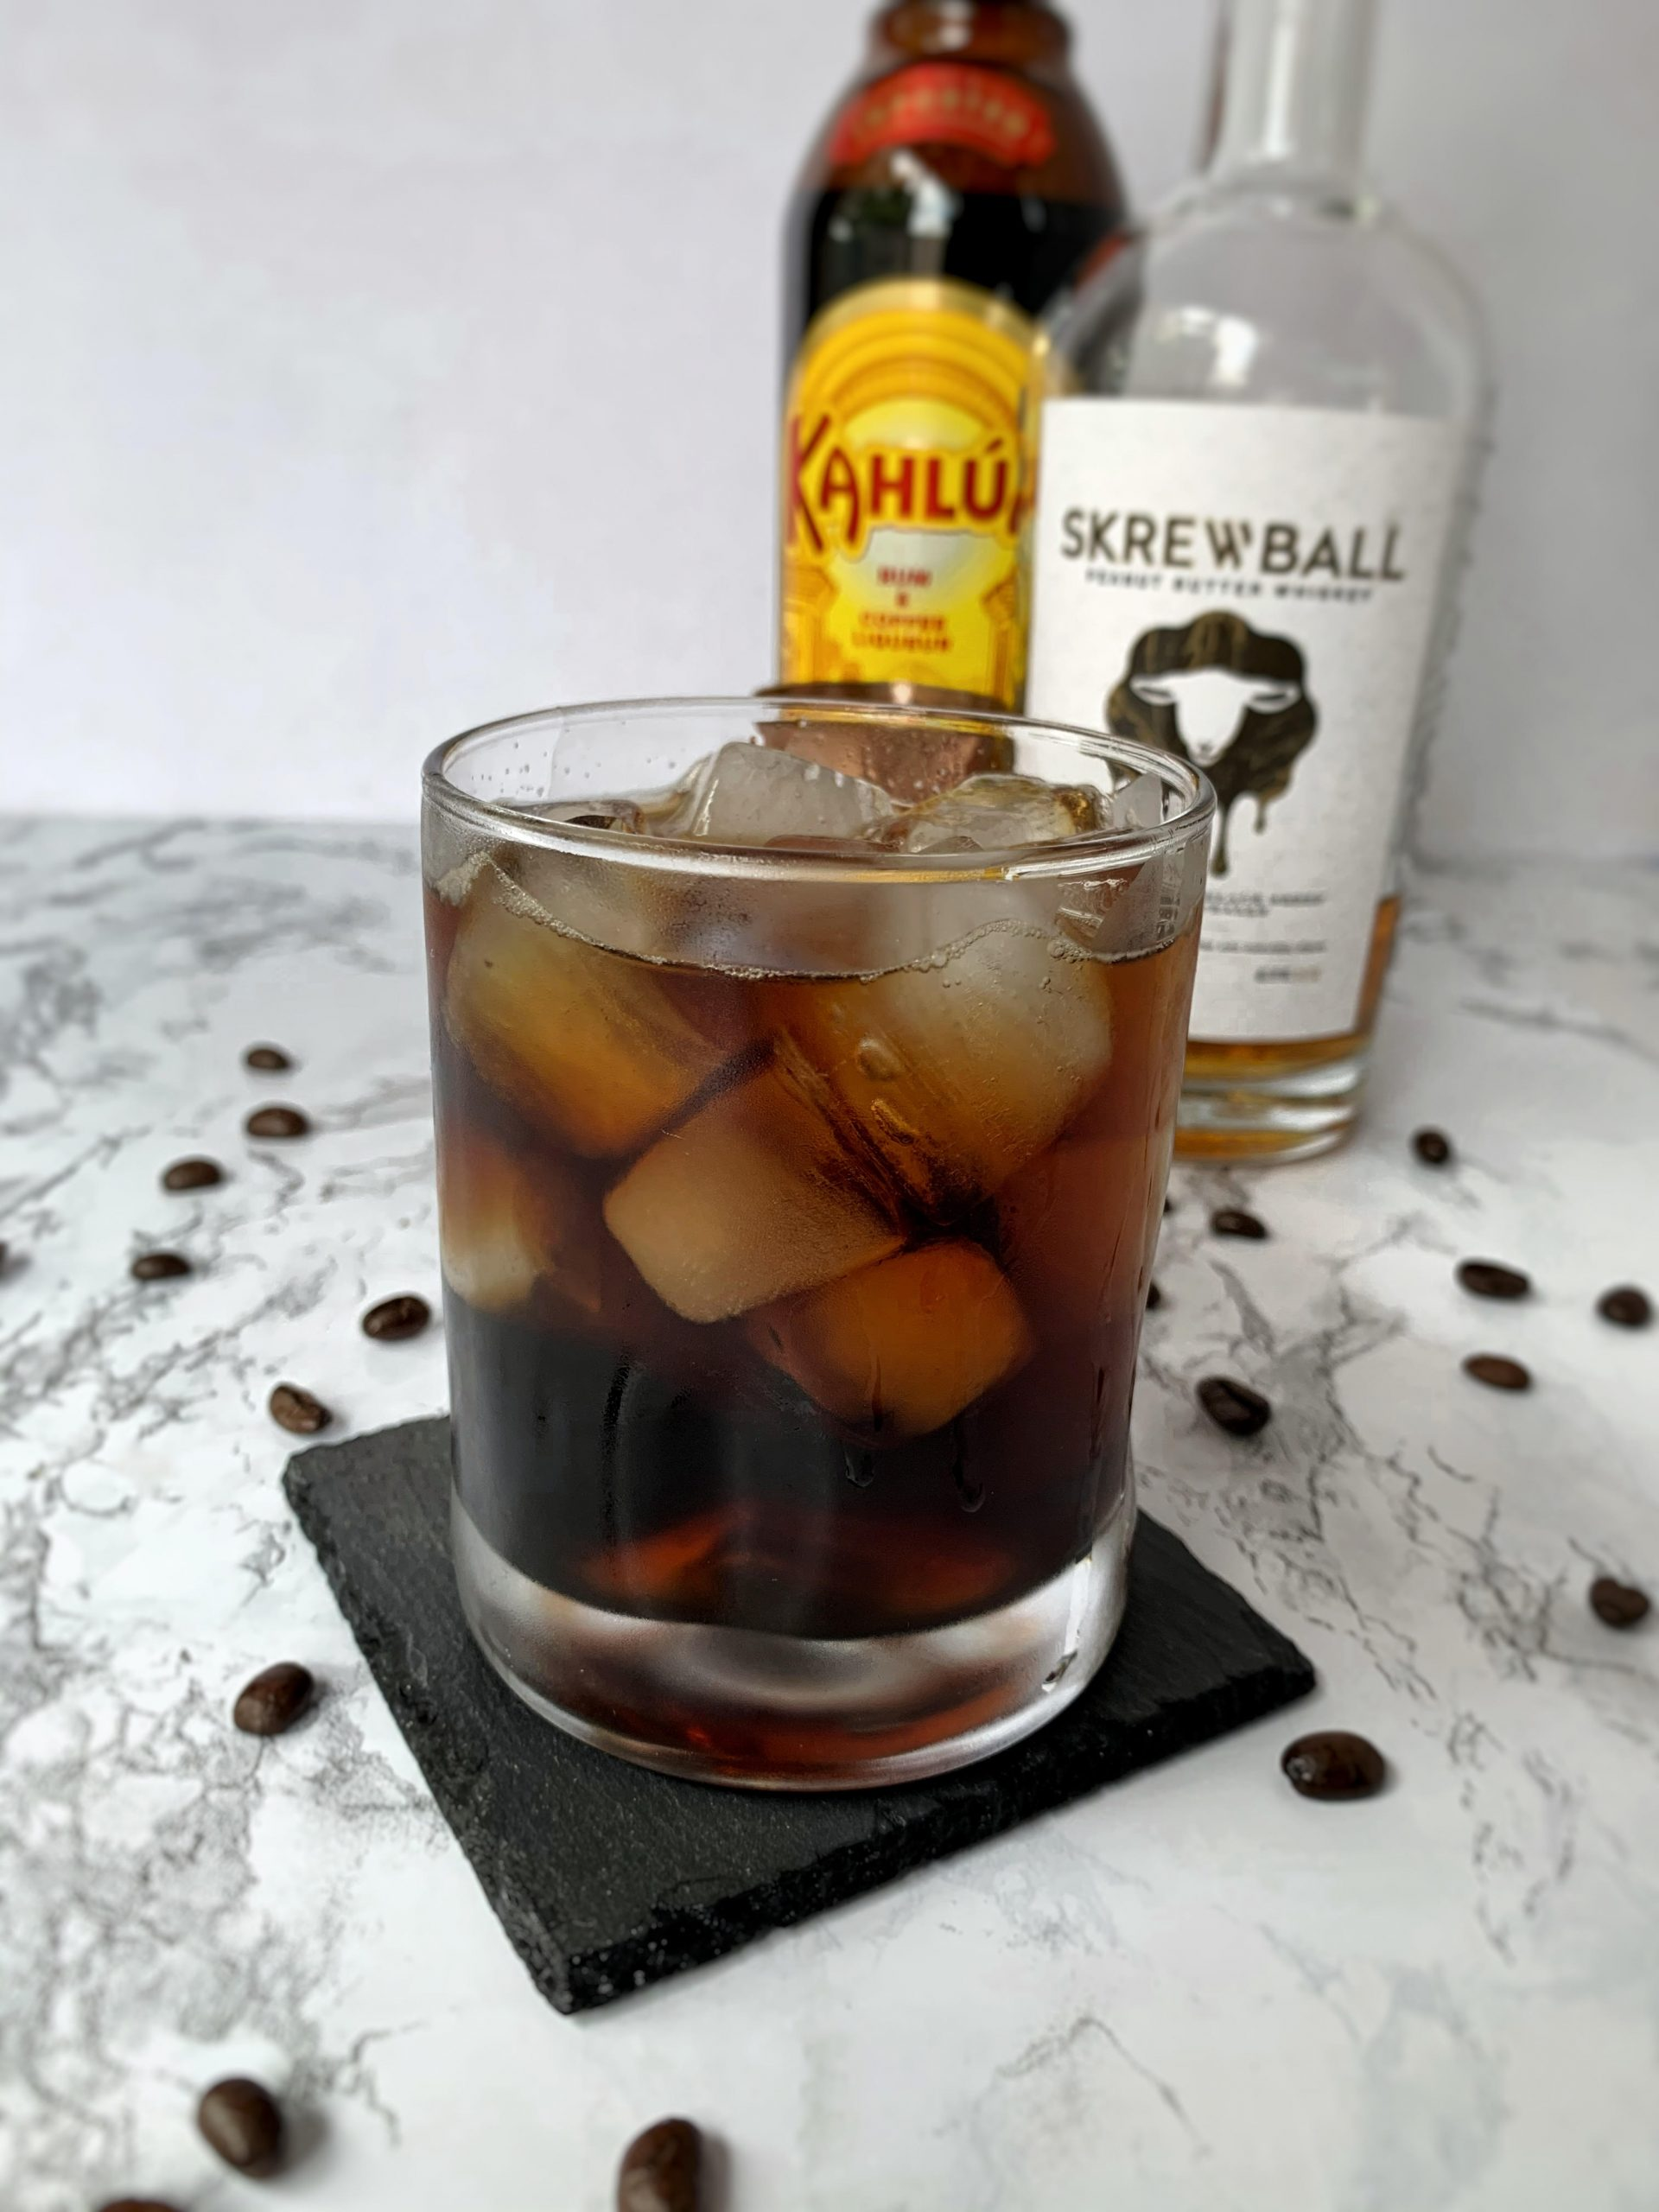 Iced coffee spiked with Skrewball Peanut Butter Whiskey and Kahlua coffee liqueur